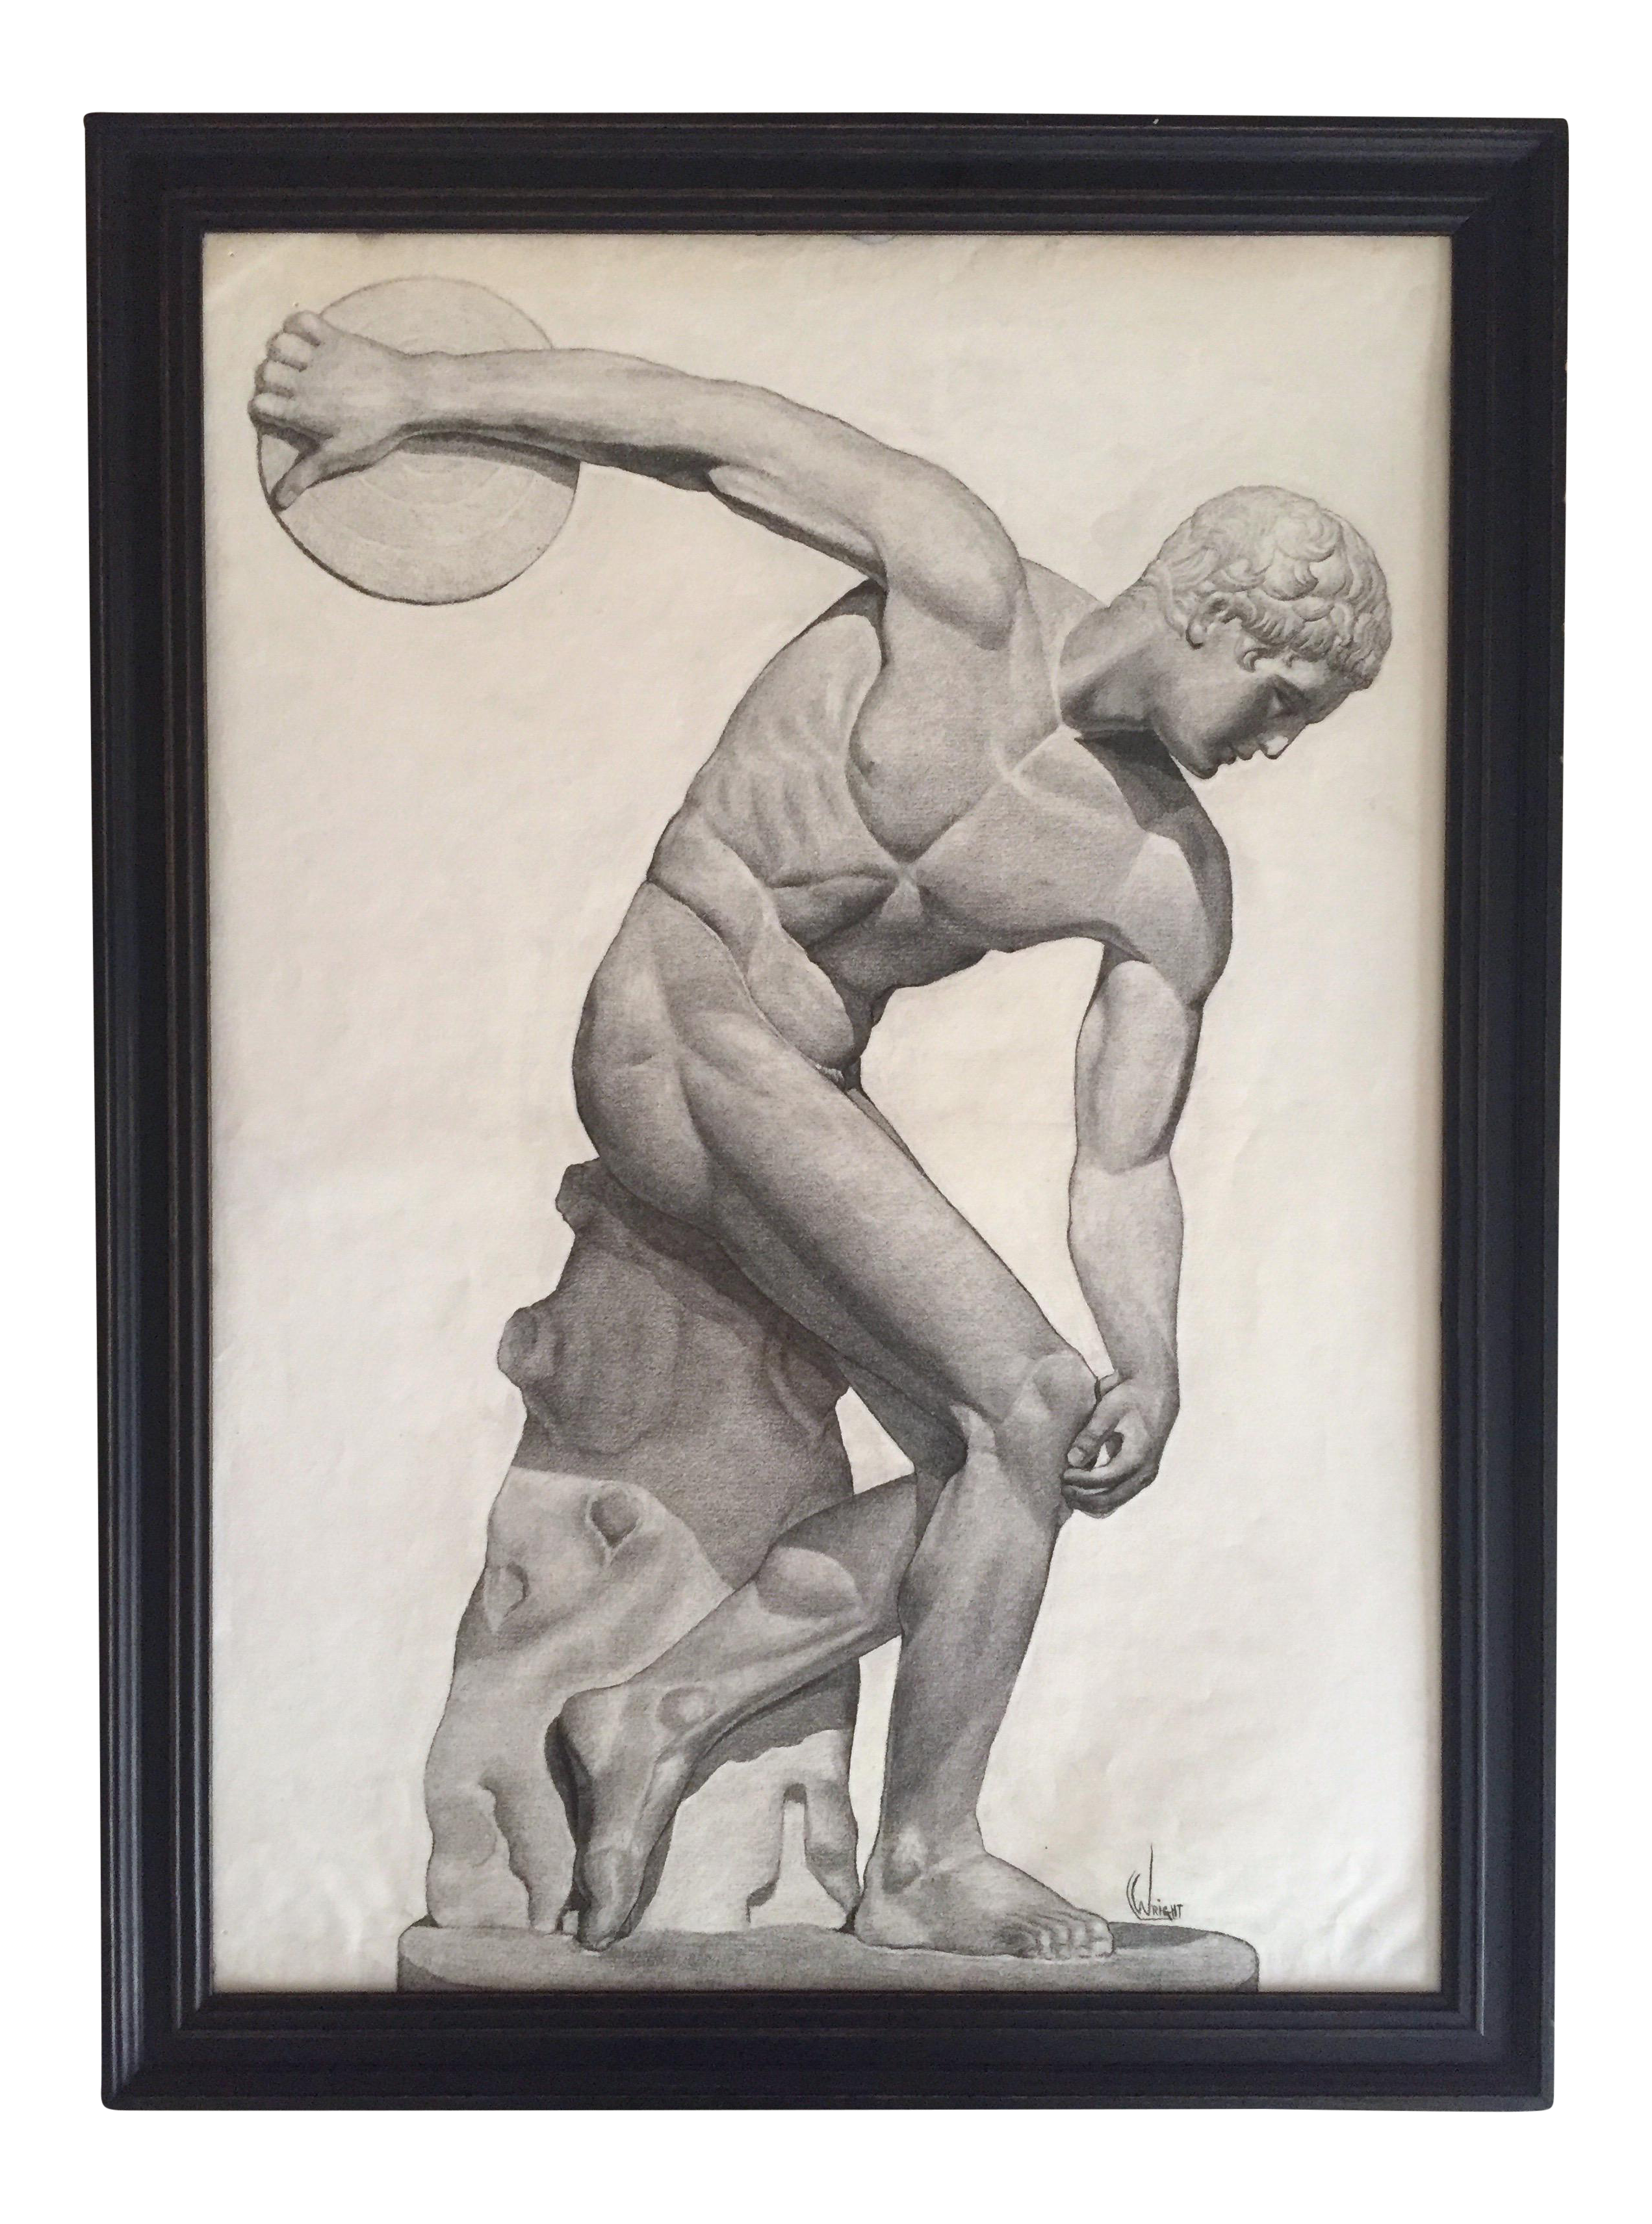 vector black and white Vintage s discus thrower. Bicep drawing charcoal